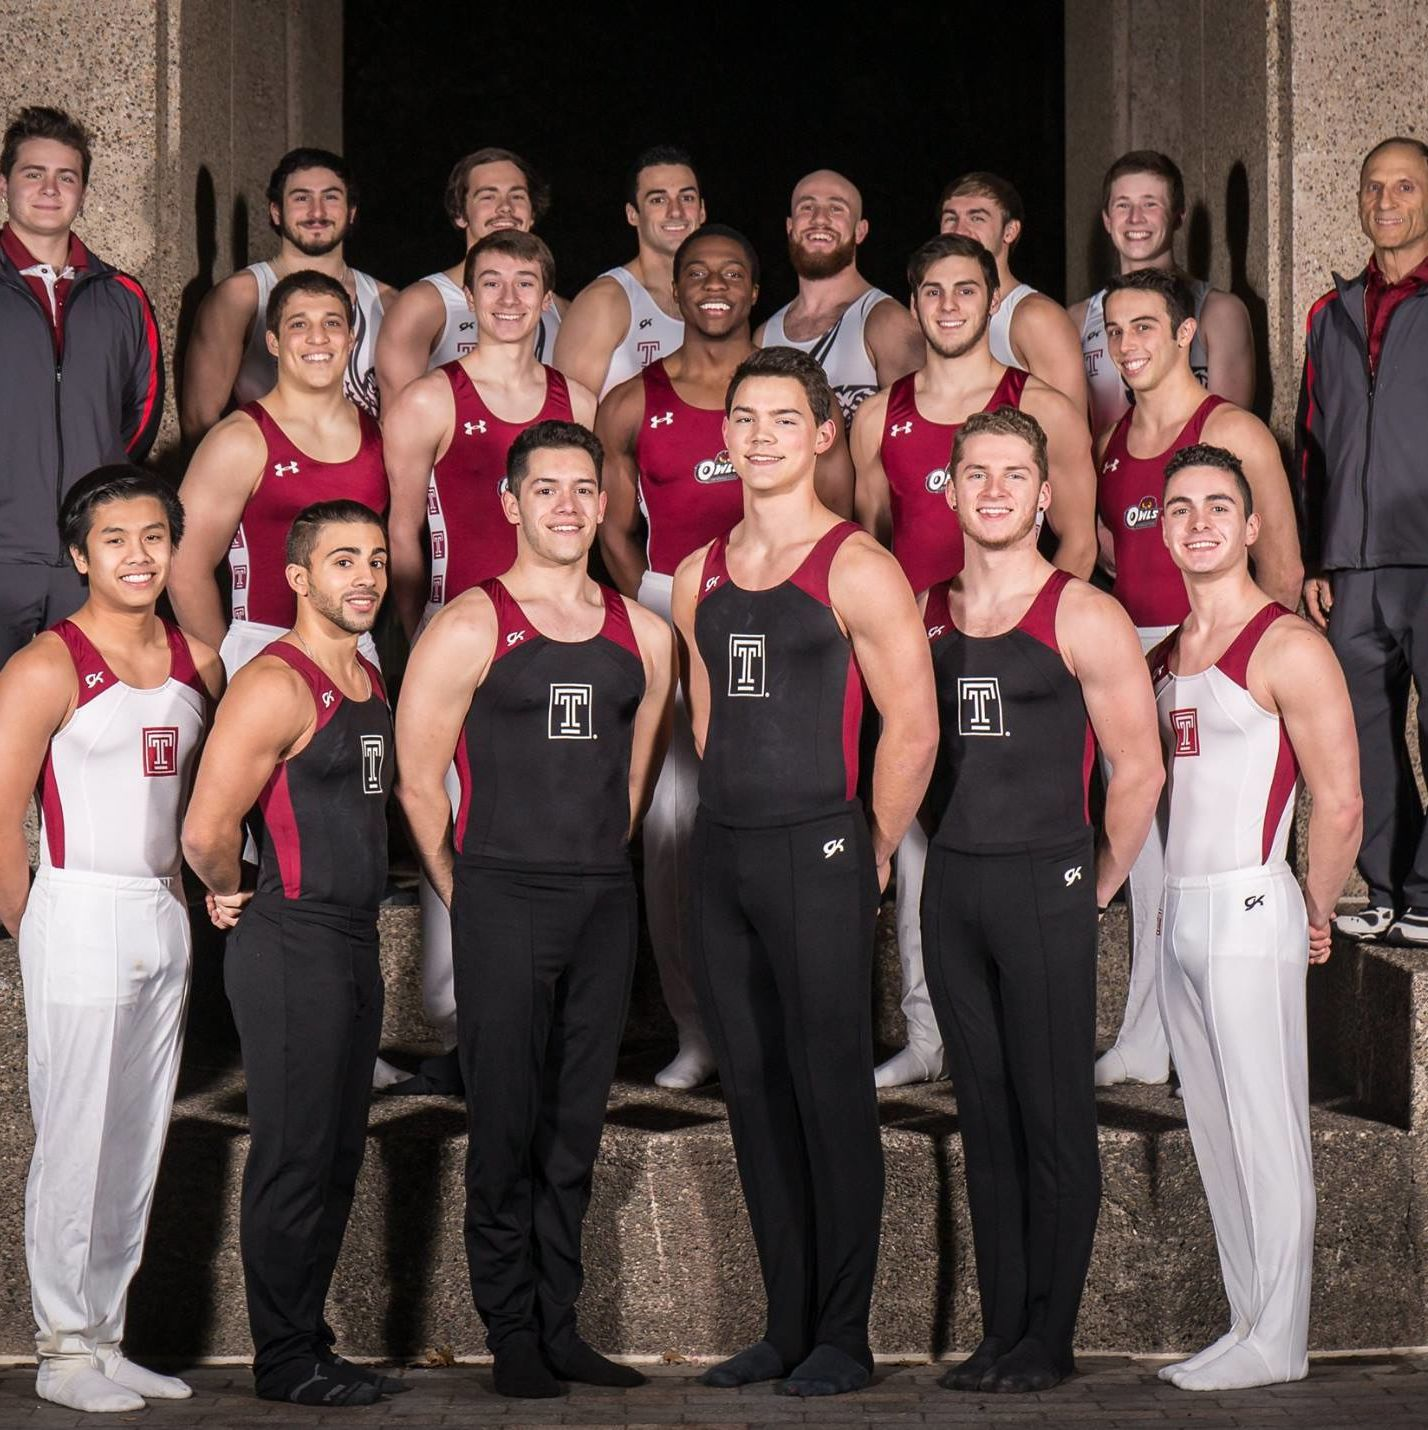 Temple University Men's Elite Gymnastics Club team photo 2015-16